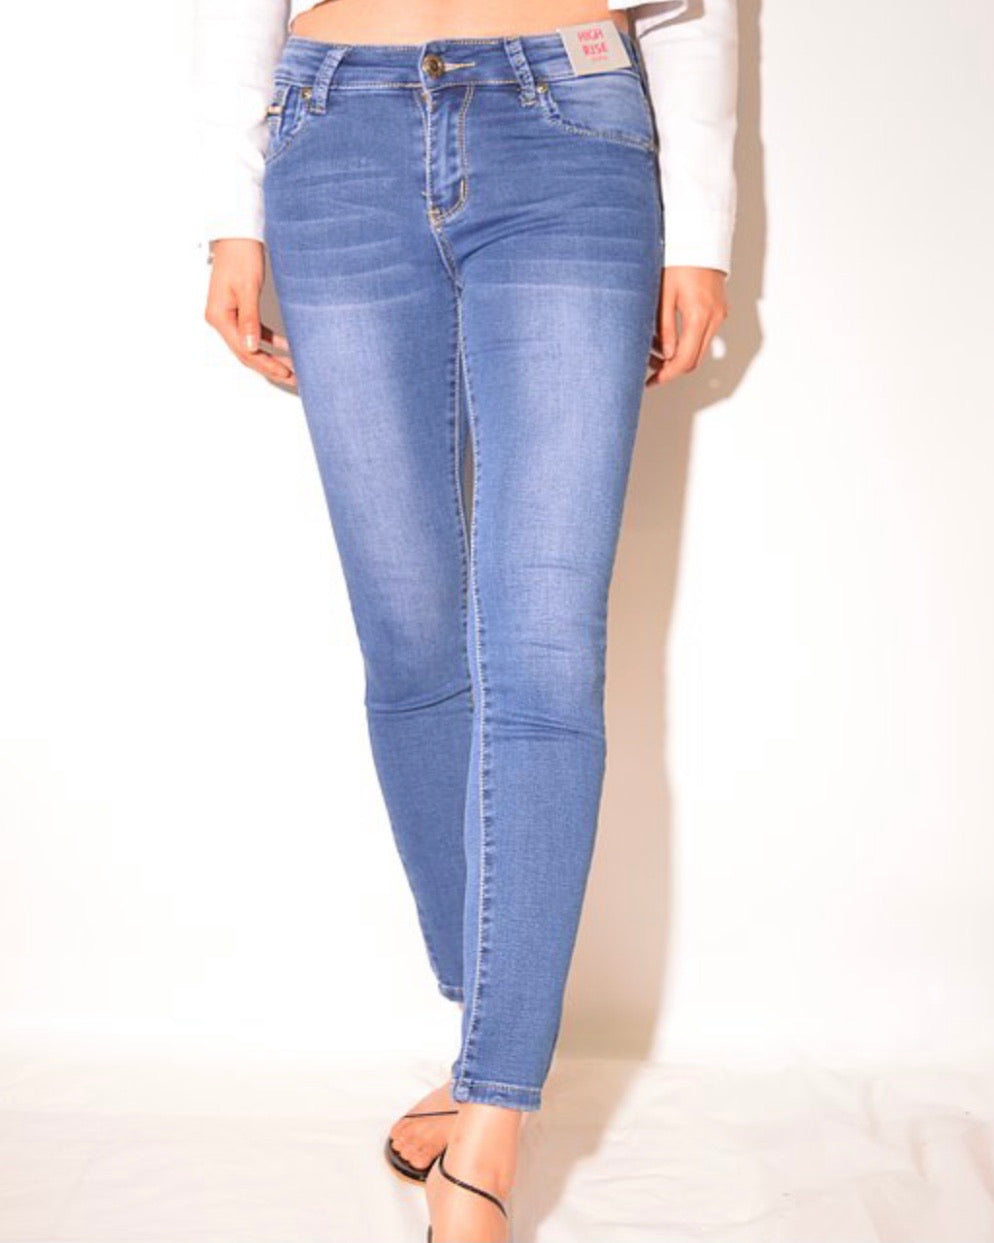 Seabreeze Blue denim Jeans